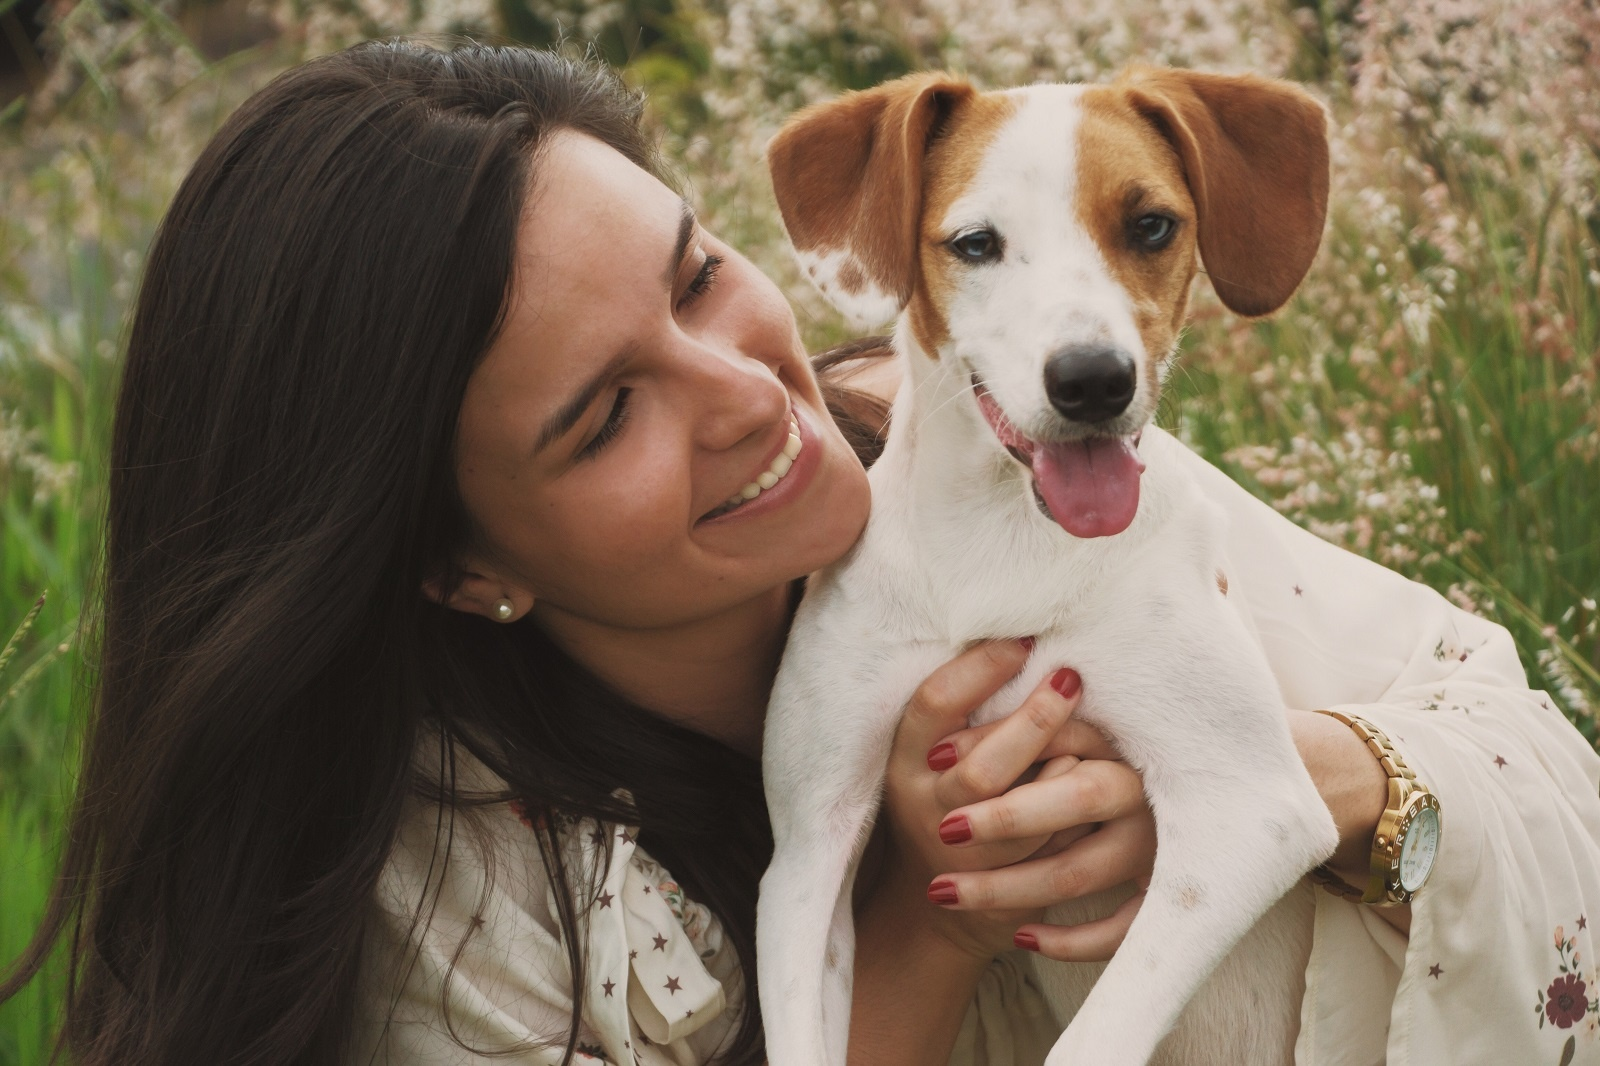 How to Prevent Your Pet from Getting Heartworms